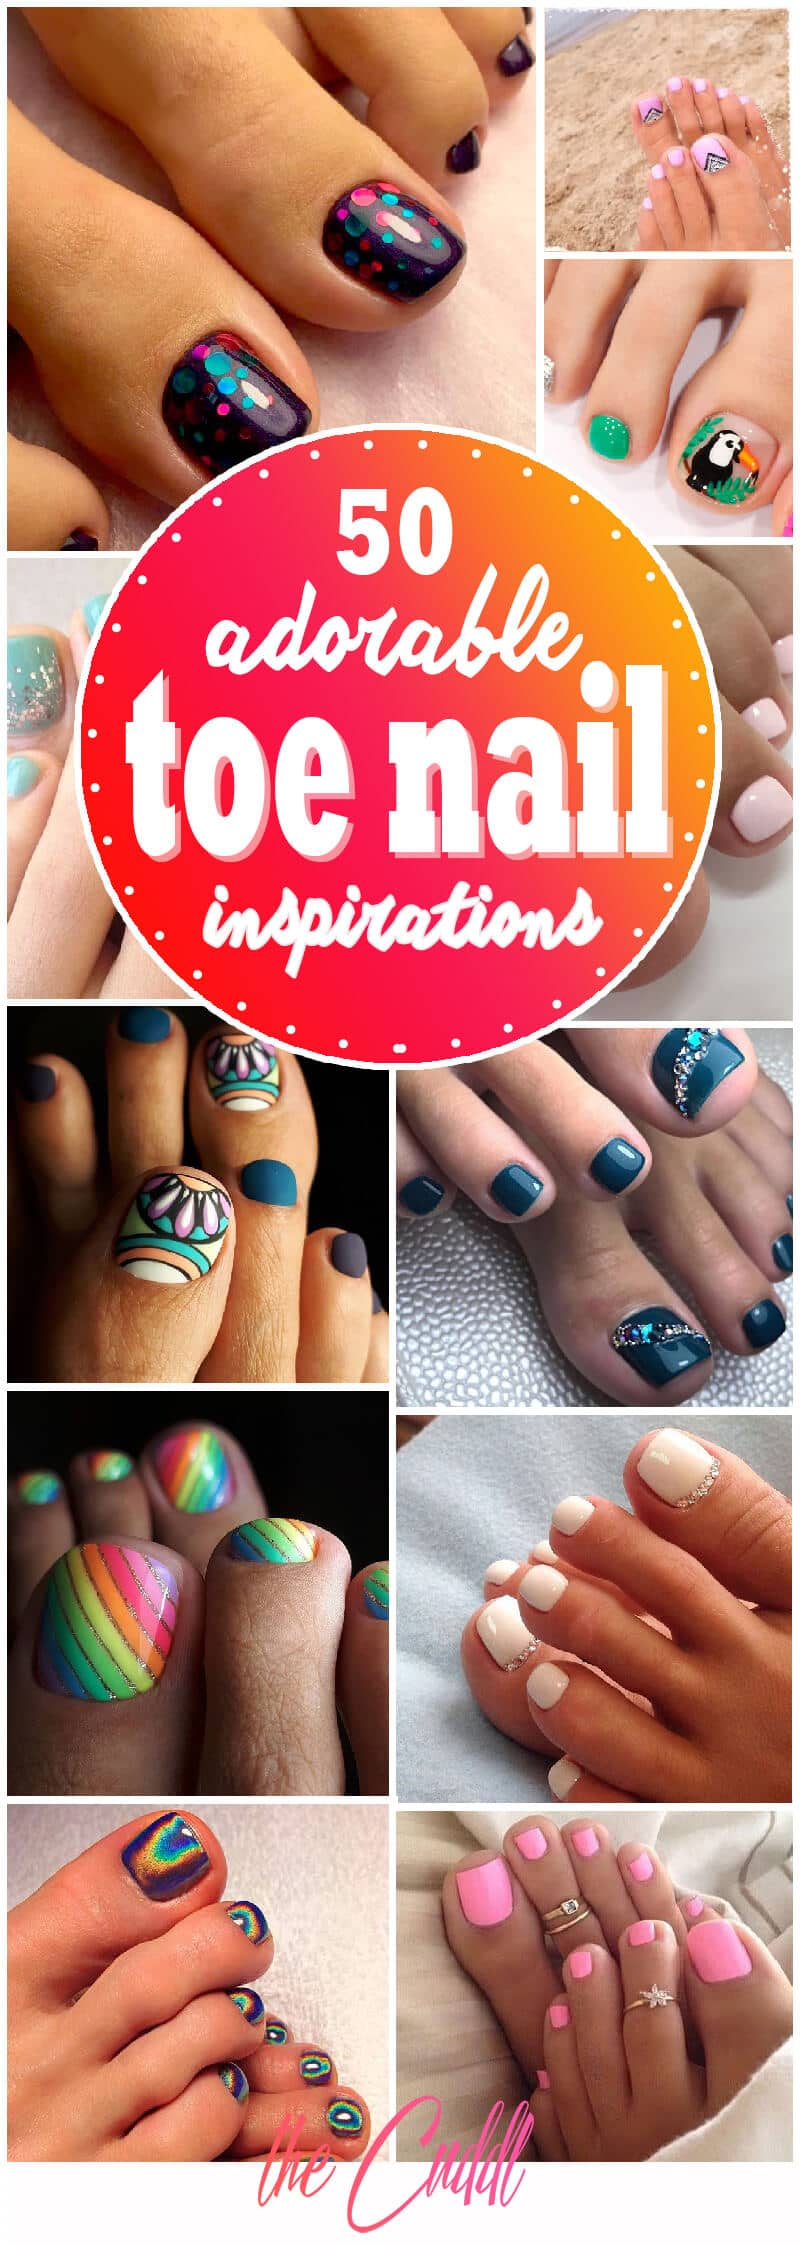 50 Cute Summer Toe Nail Art And Design Ideas For 2020,Modern Interior Design Living Room Black And White